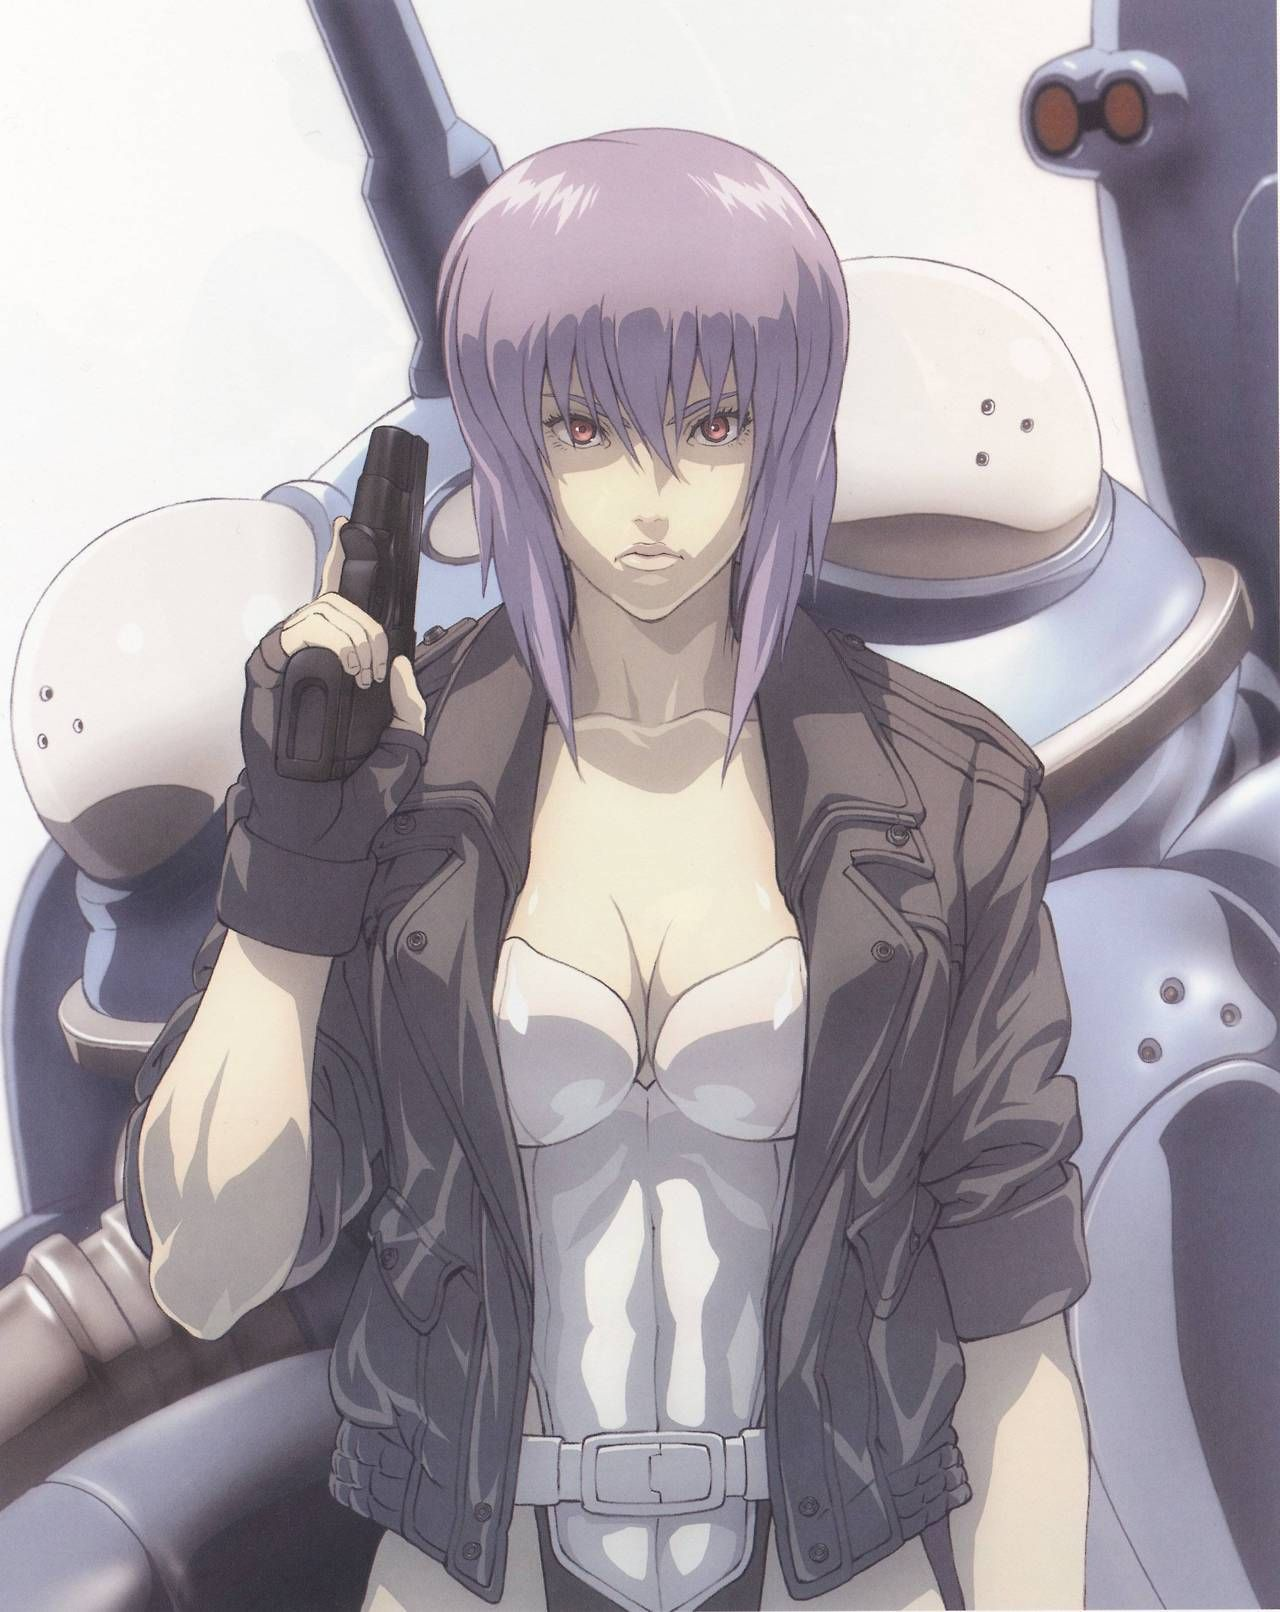 Motoko Kusanagi from Ghost in the Shell Ghost in the